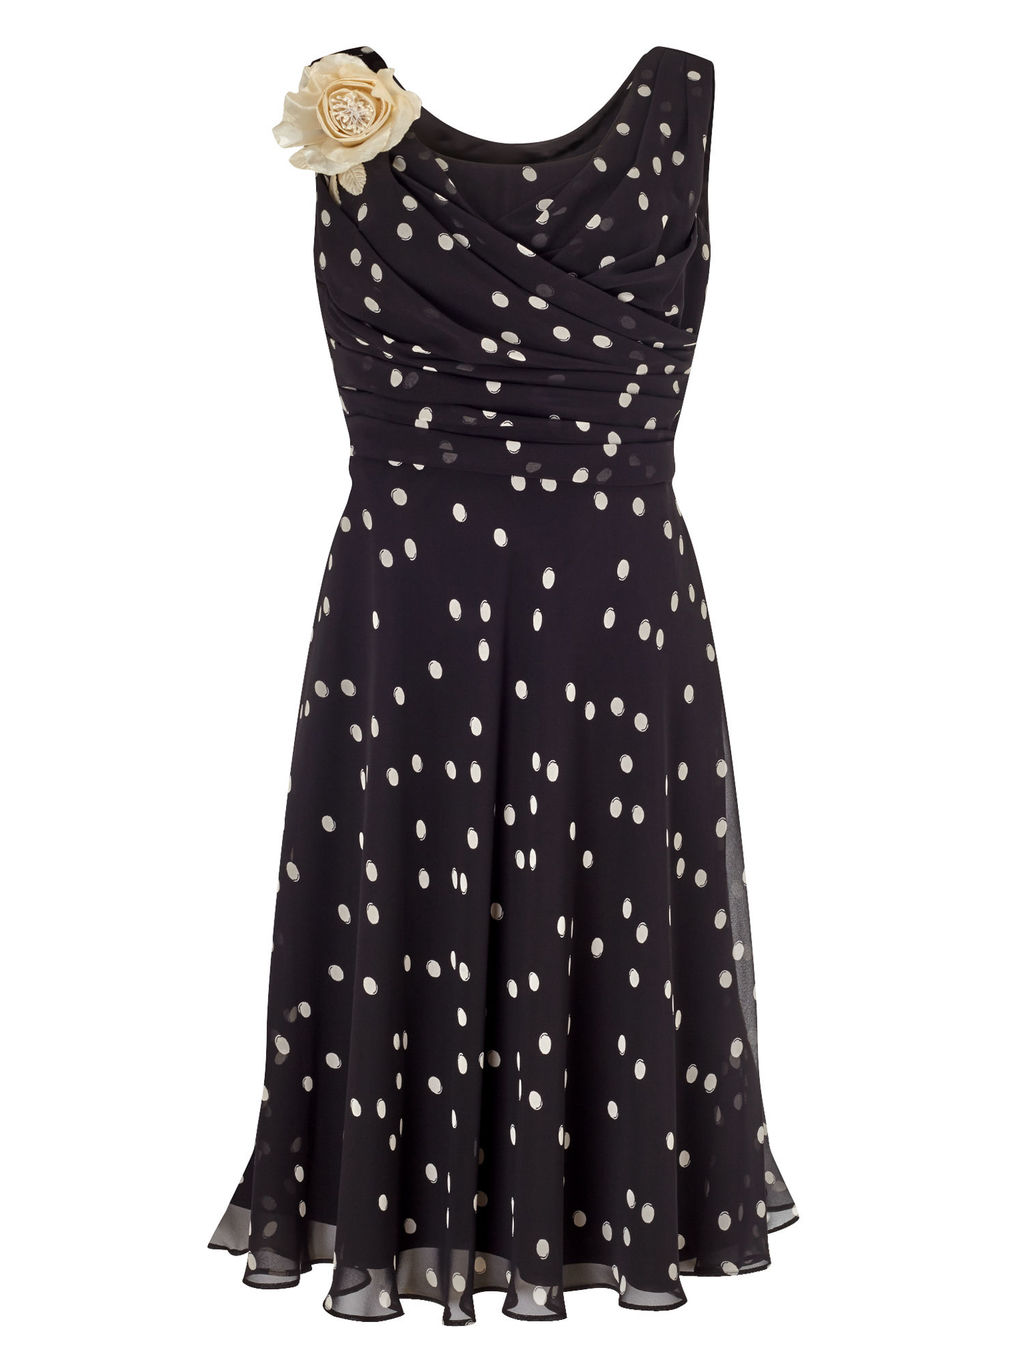 Petite Spot Print Dress, Black - style: a-line; neckline: cowl/draped neck; fit: fitted at waist; sleeve style: sleeveless; pattern: polka dot; bust detail: subtle bust detail; secondary colour: white; predominant colour: black; length: just above the knee; fibres: polyester/polyamide - stretch; occasions: occasion; hip detail: subtle/flattering hip detail; sleeve length: sleeveless; texture group: sheer fabrics/chiffon/organza etc.; pattern type: fabric; pattern size: light/subtle; embellishment: corsage; season: s/s 2016; wardrobe: event